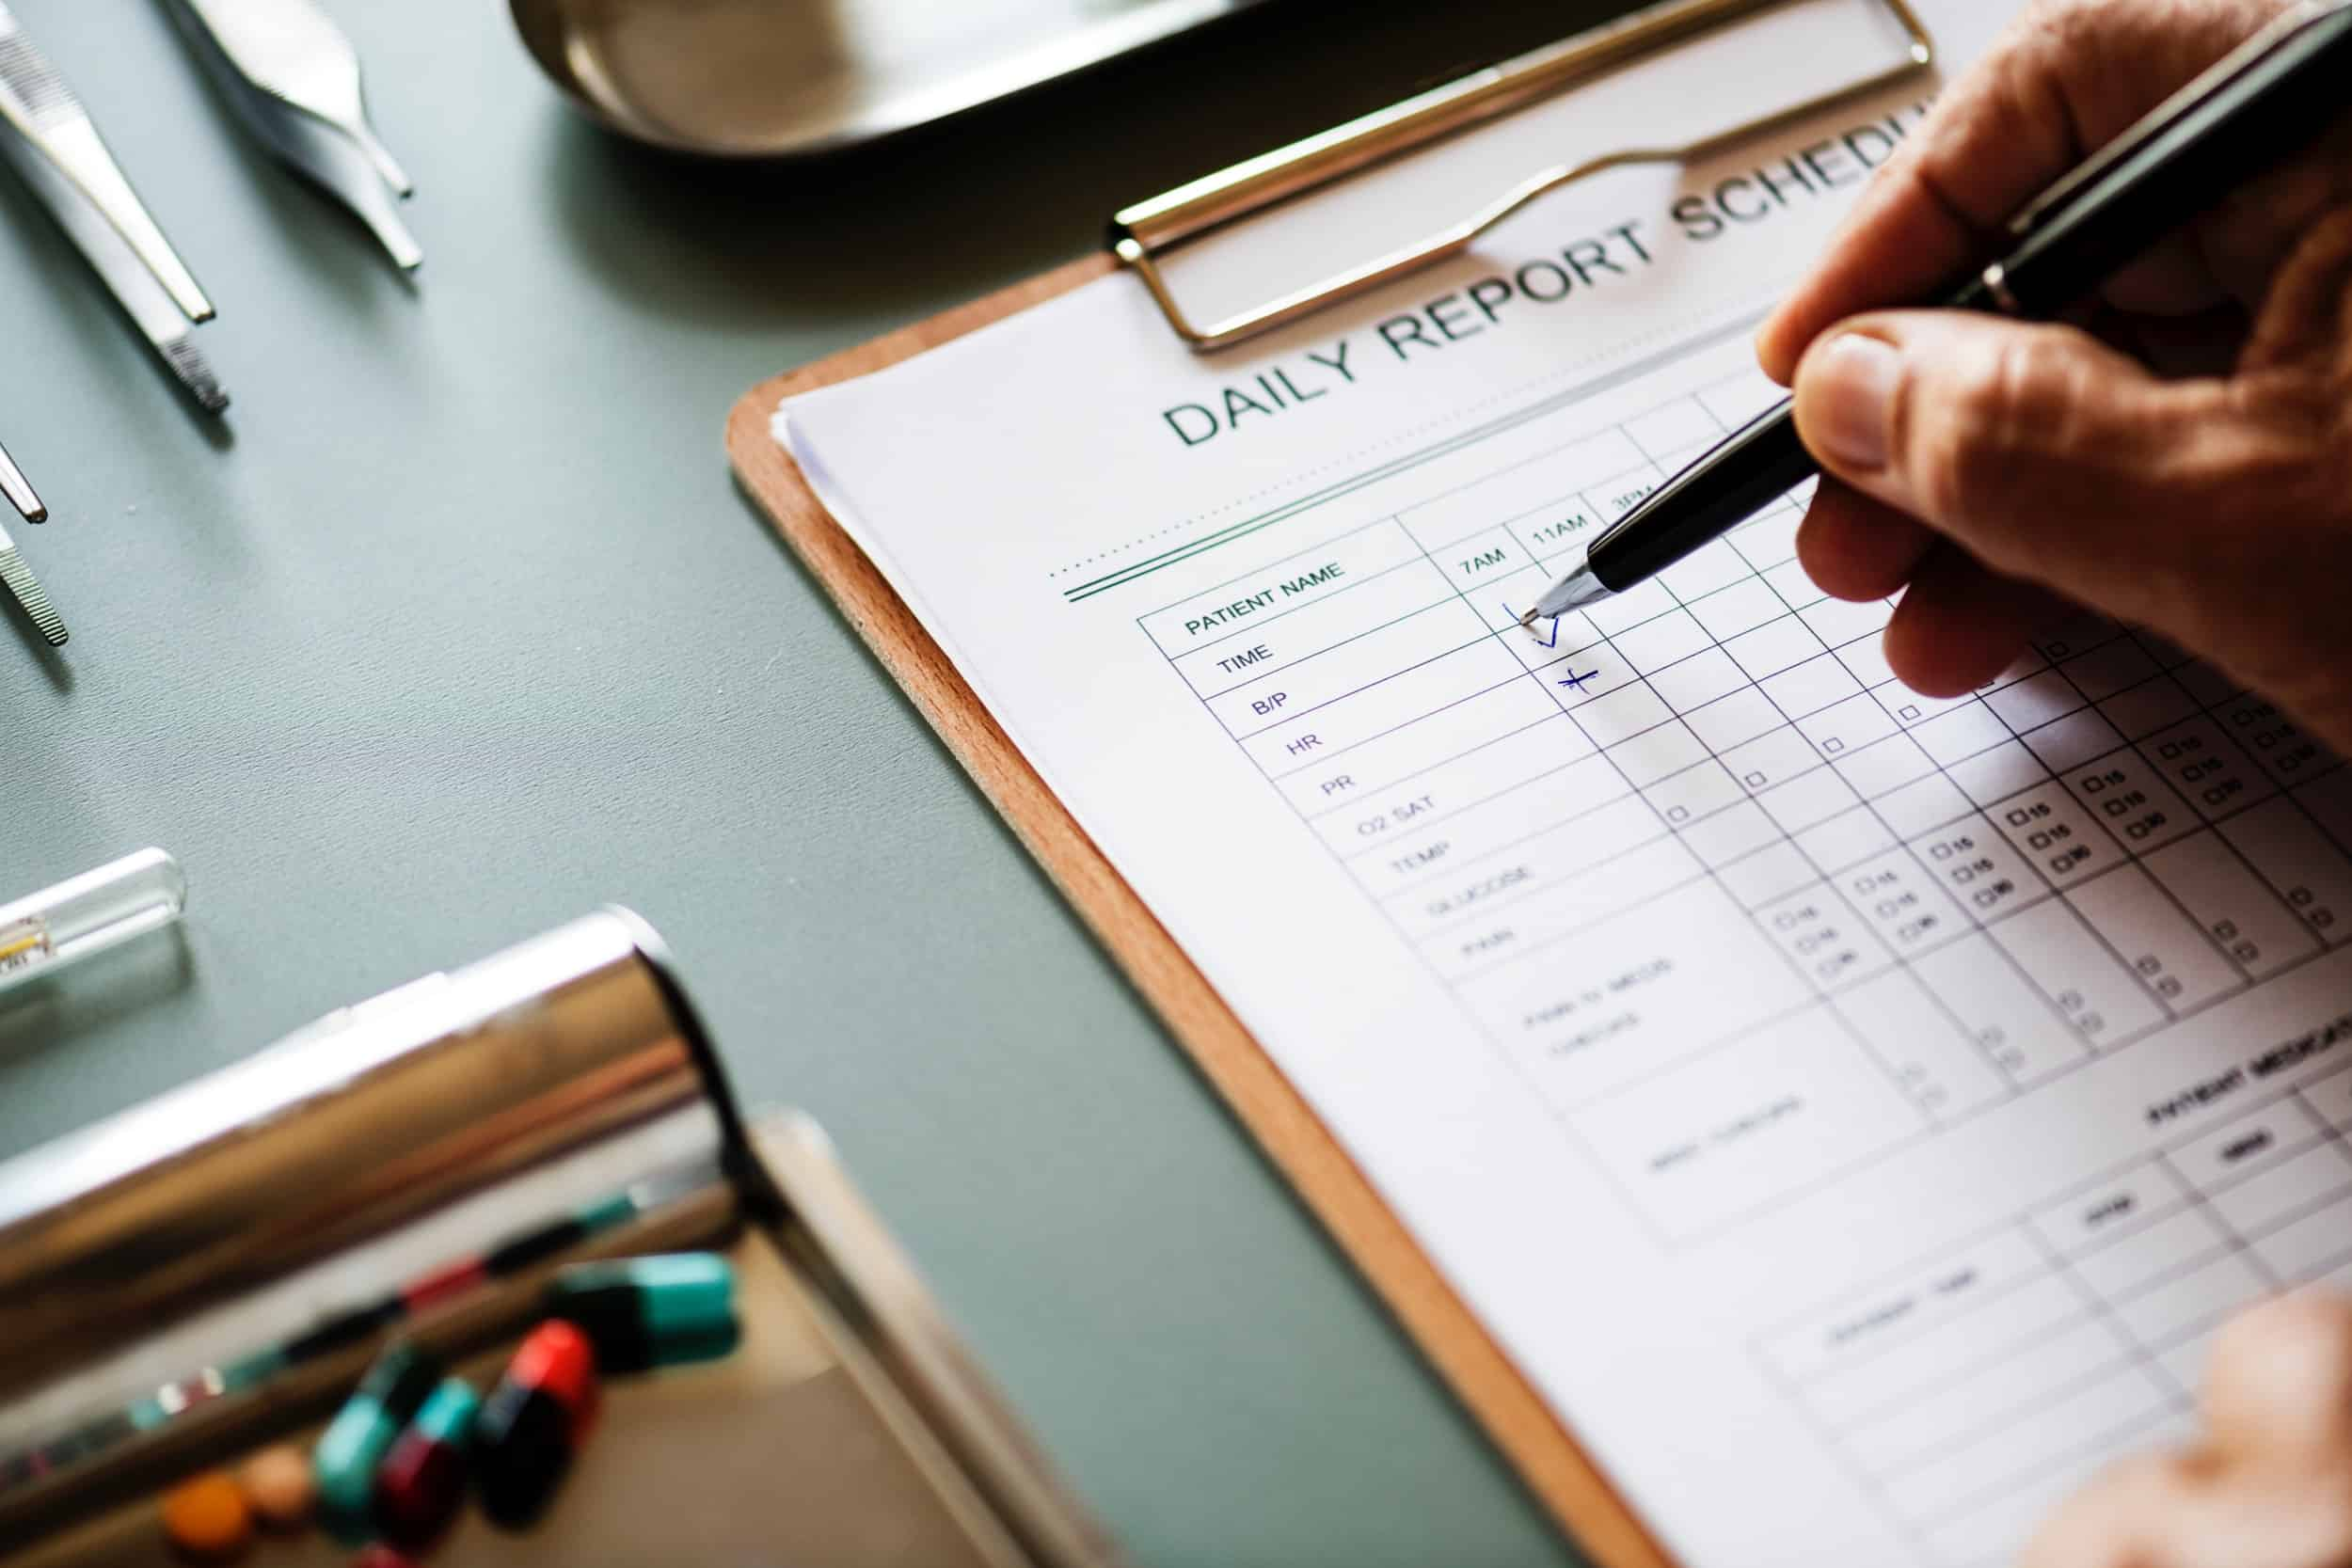 4 tips to get your medical questions answered if you have questions to ask your doctor. Effectively ask your medical question at your next doctor appointment!